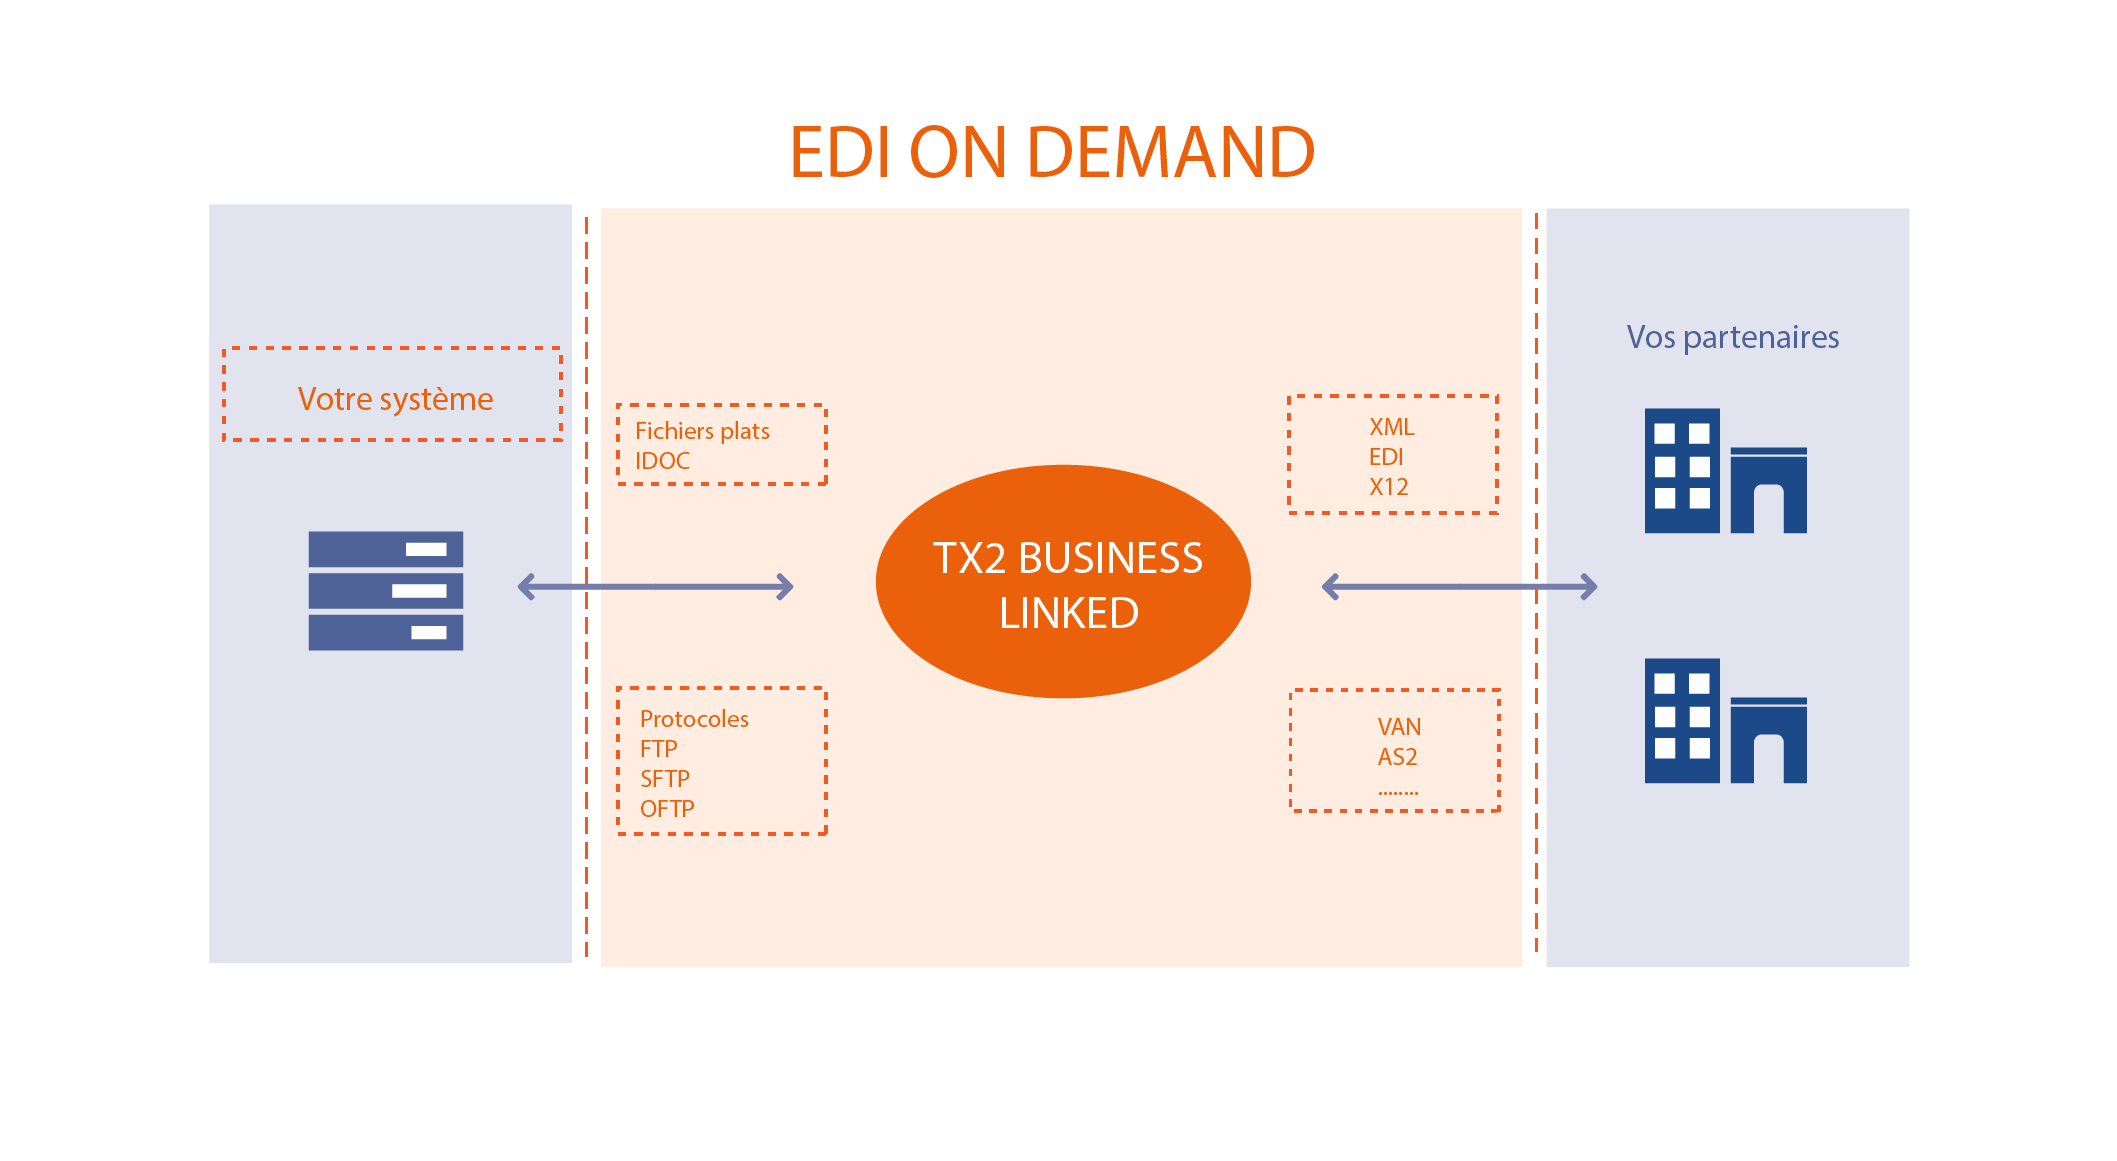 EDI-ON-DEMAND